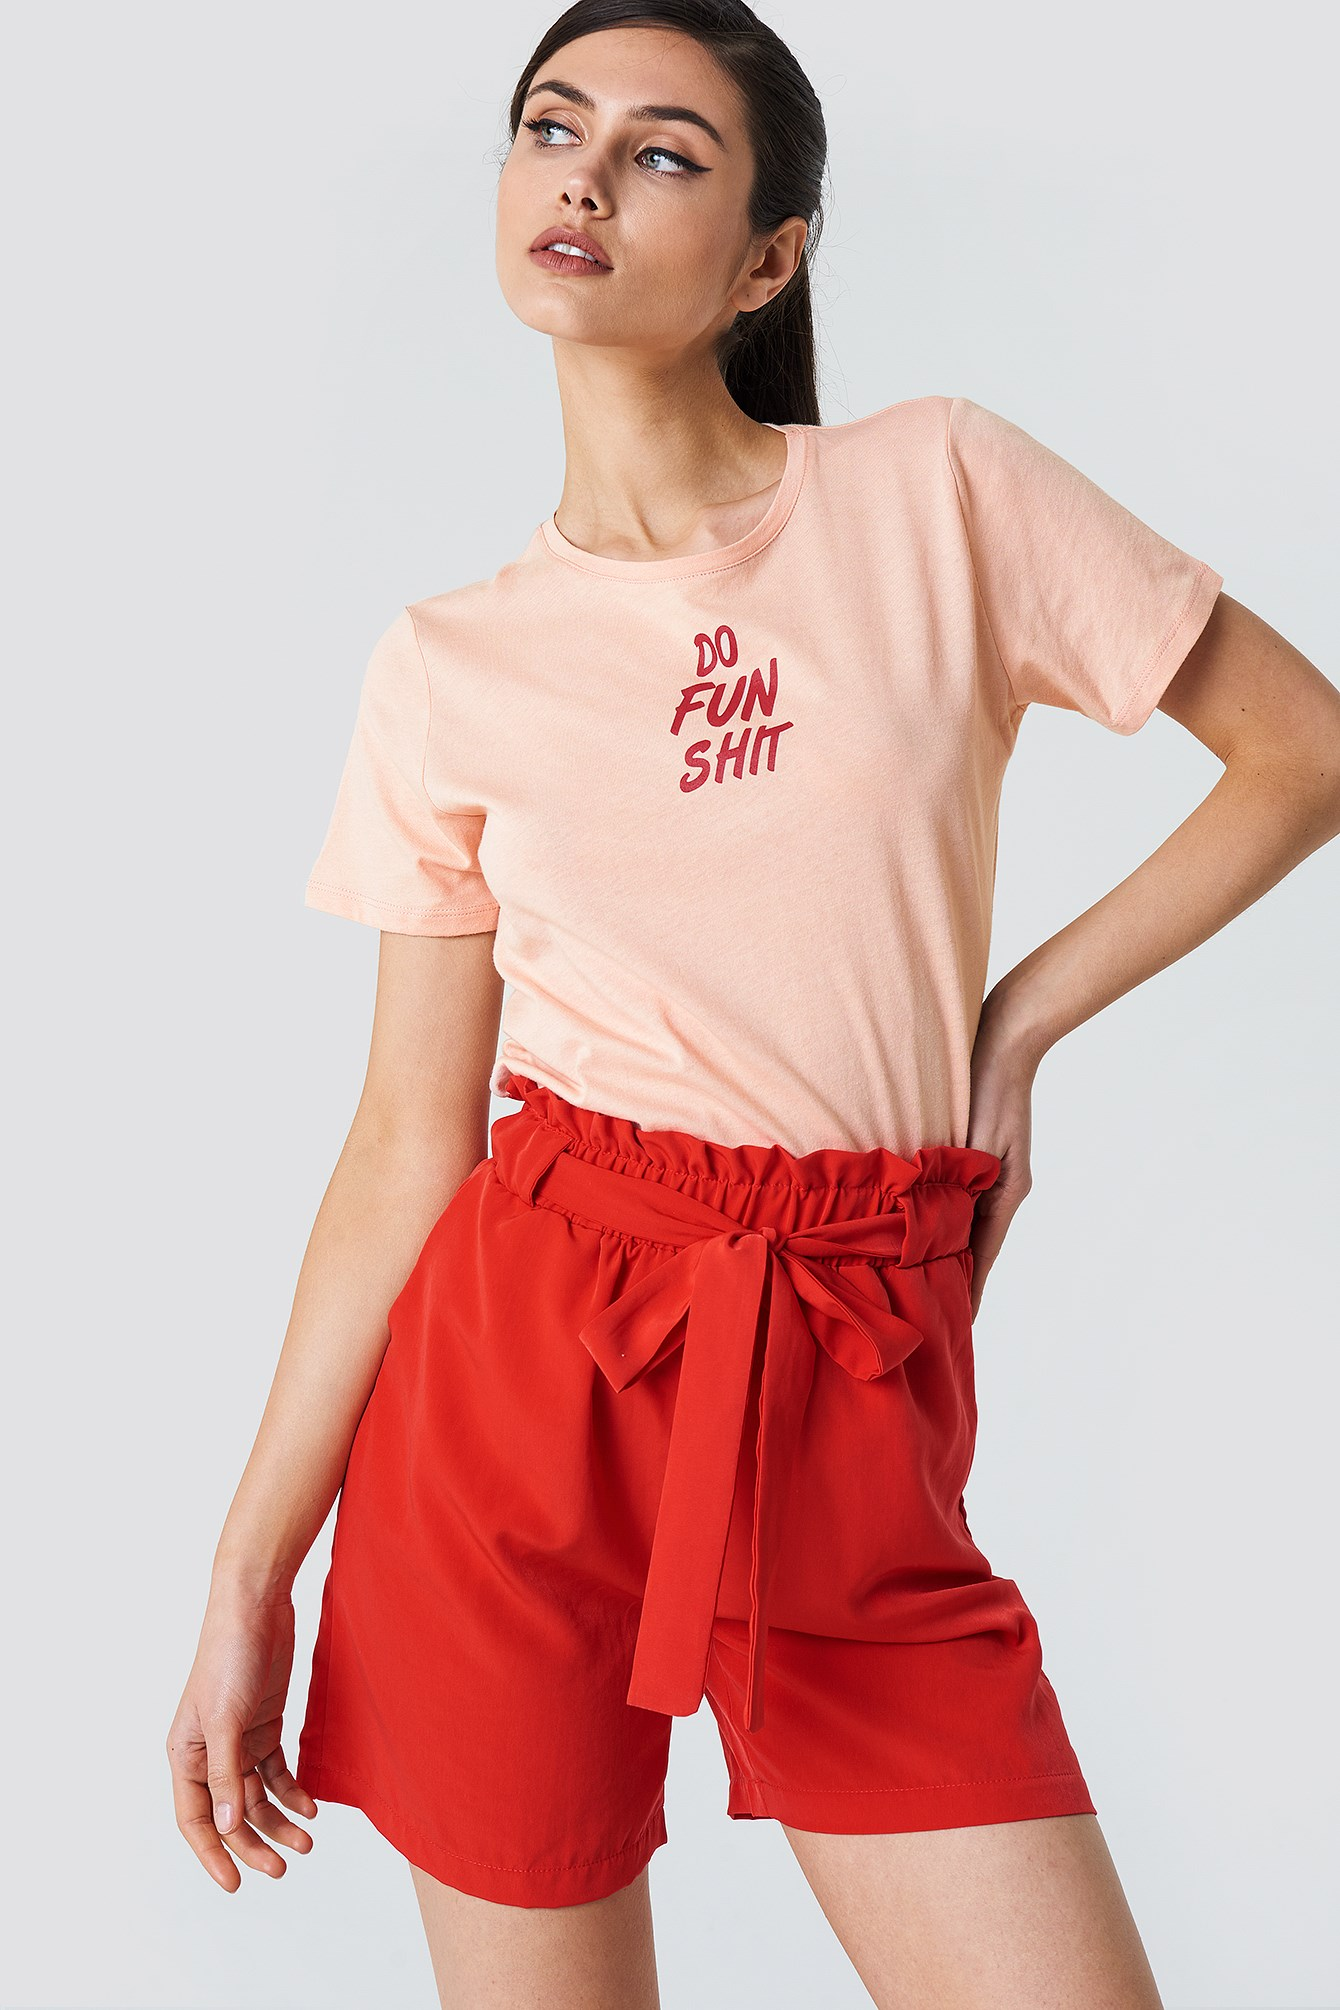 Do Fun Shit Tee NA-KD.COM